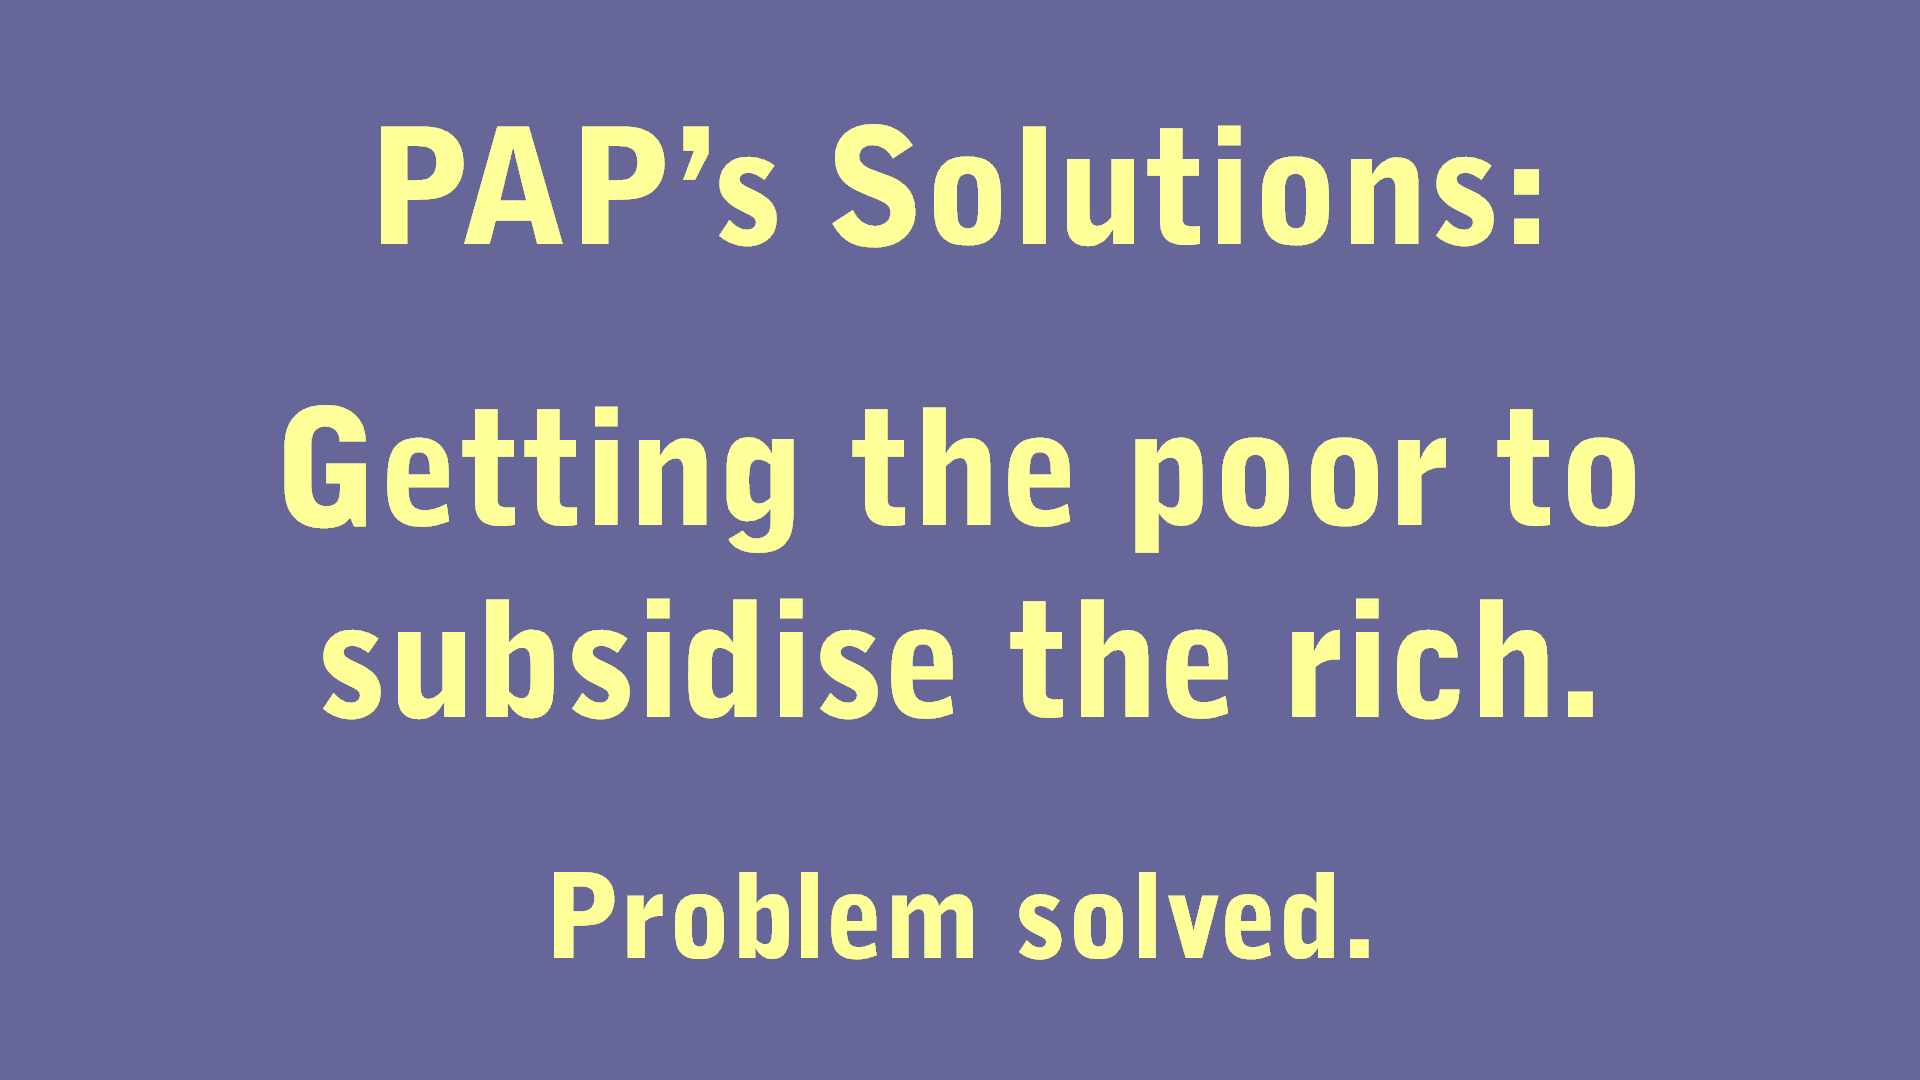 PAP's Solutions Getting the poor to subsidise the rich